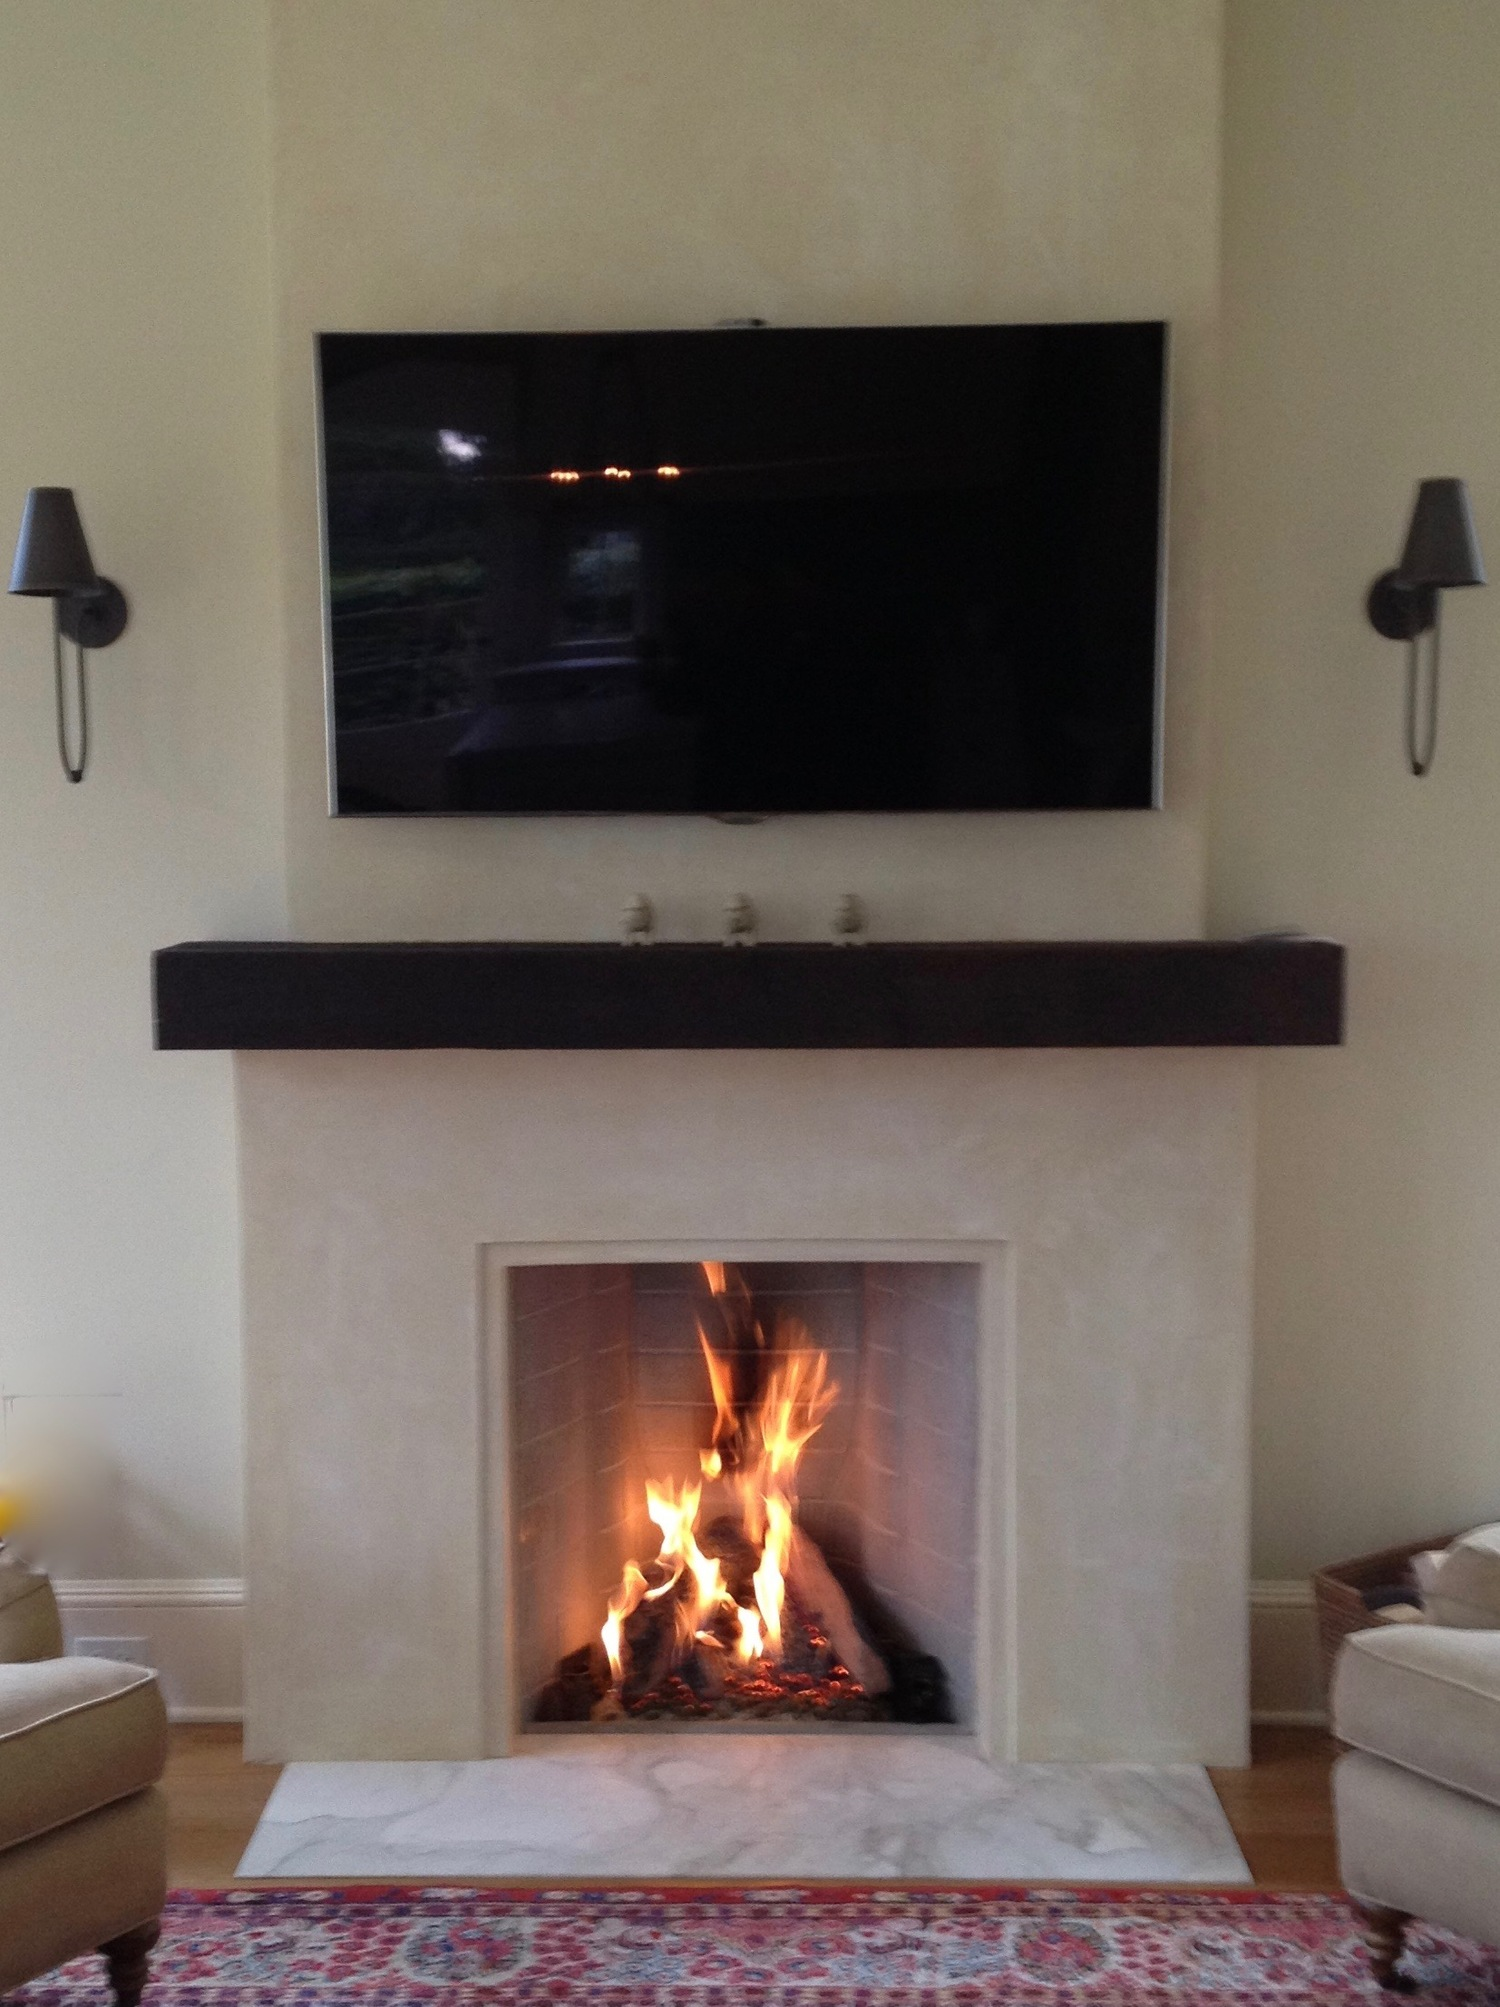 fireplaces ice garden northwest fire series built solidaria fireplace and amantii download